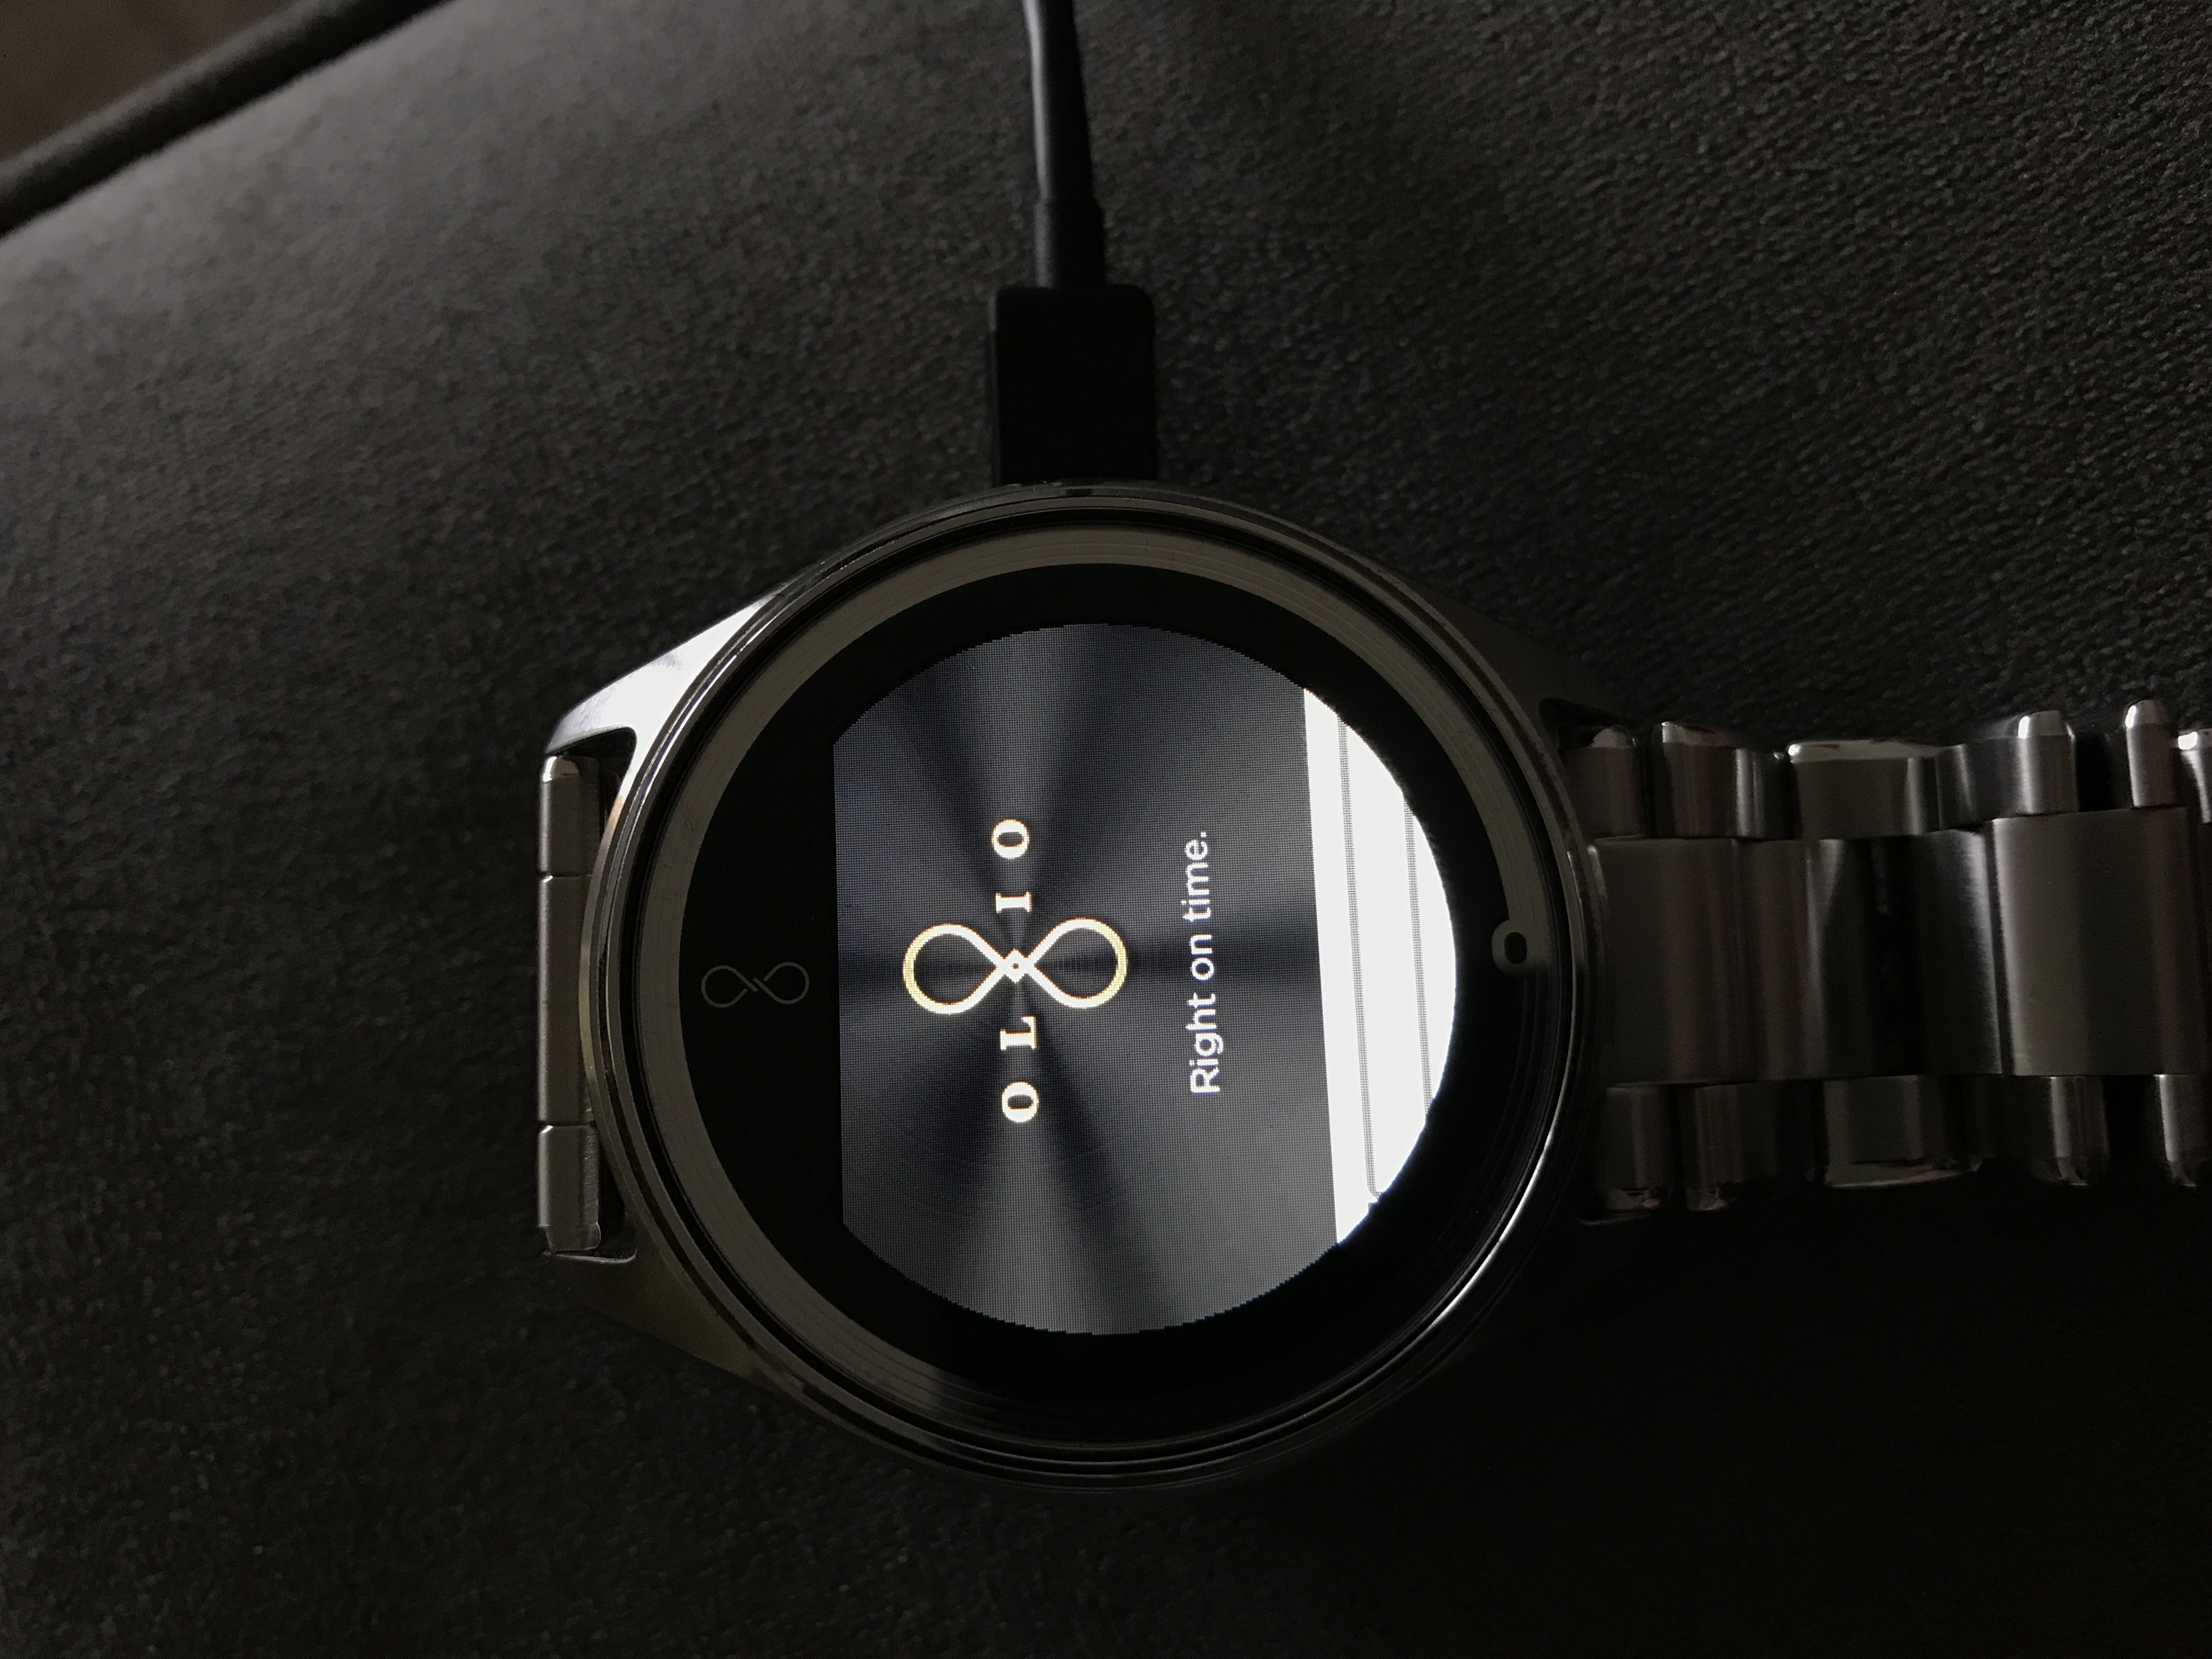 Olio Model One Smartwatch The Pebble Smart Watch Will Include A Flexible Circuit Board Any Advice Enter Image Description Here